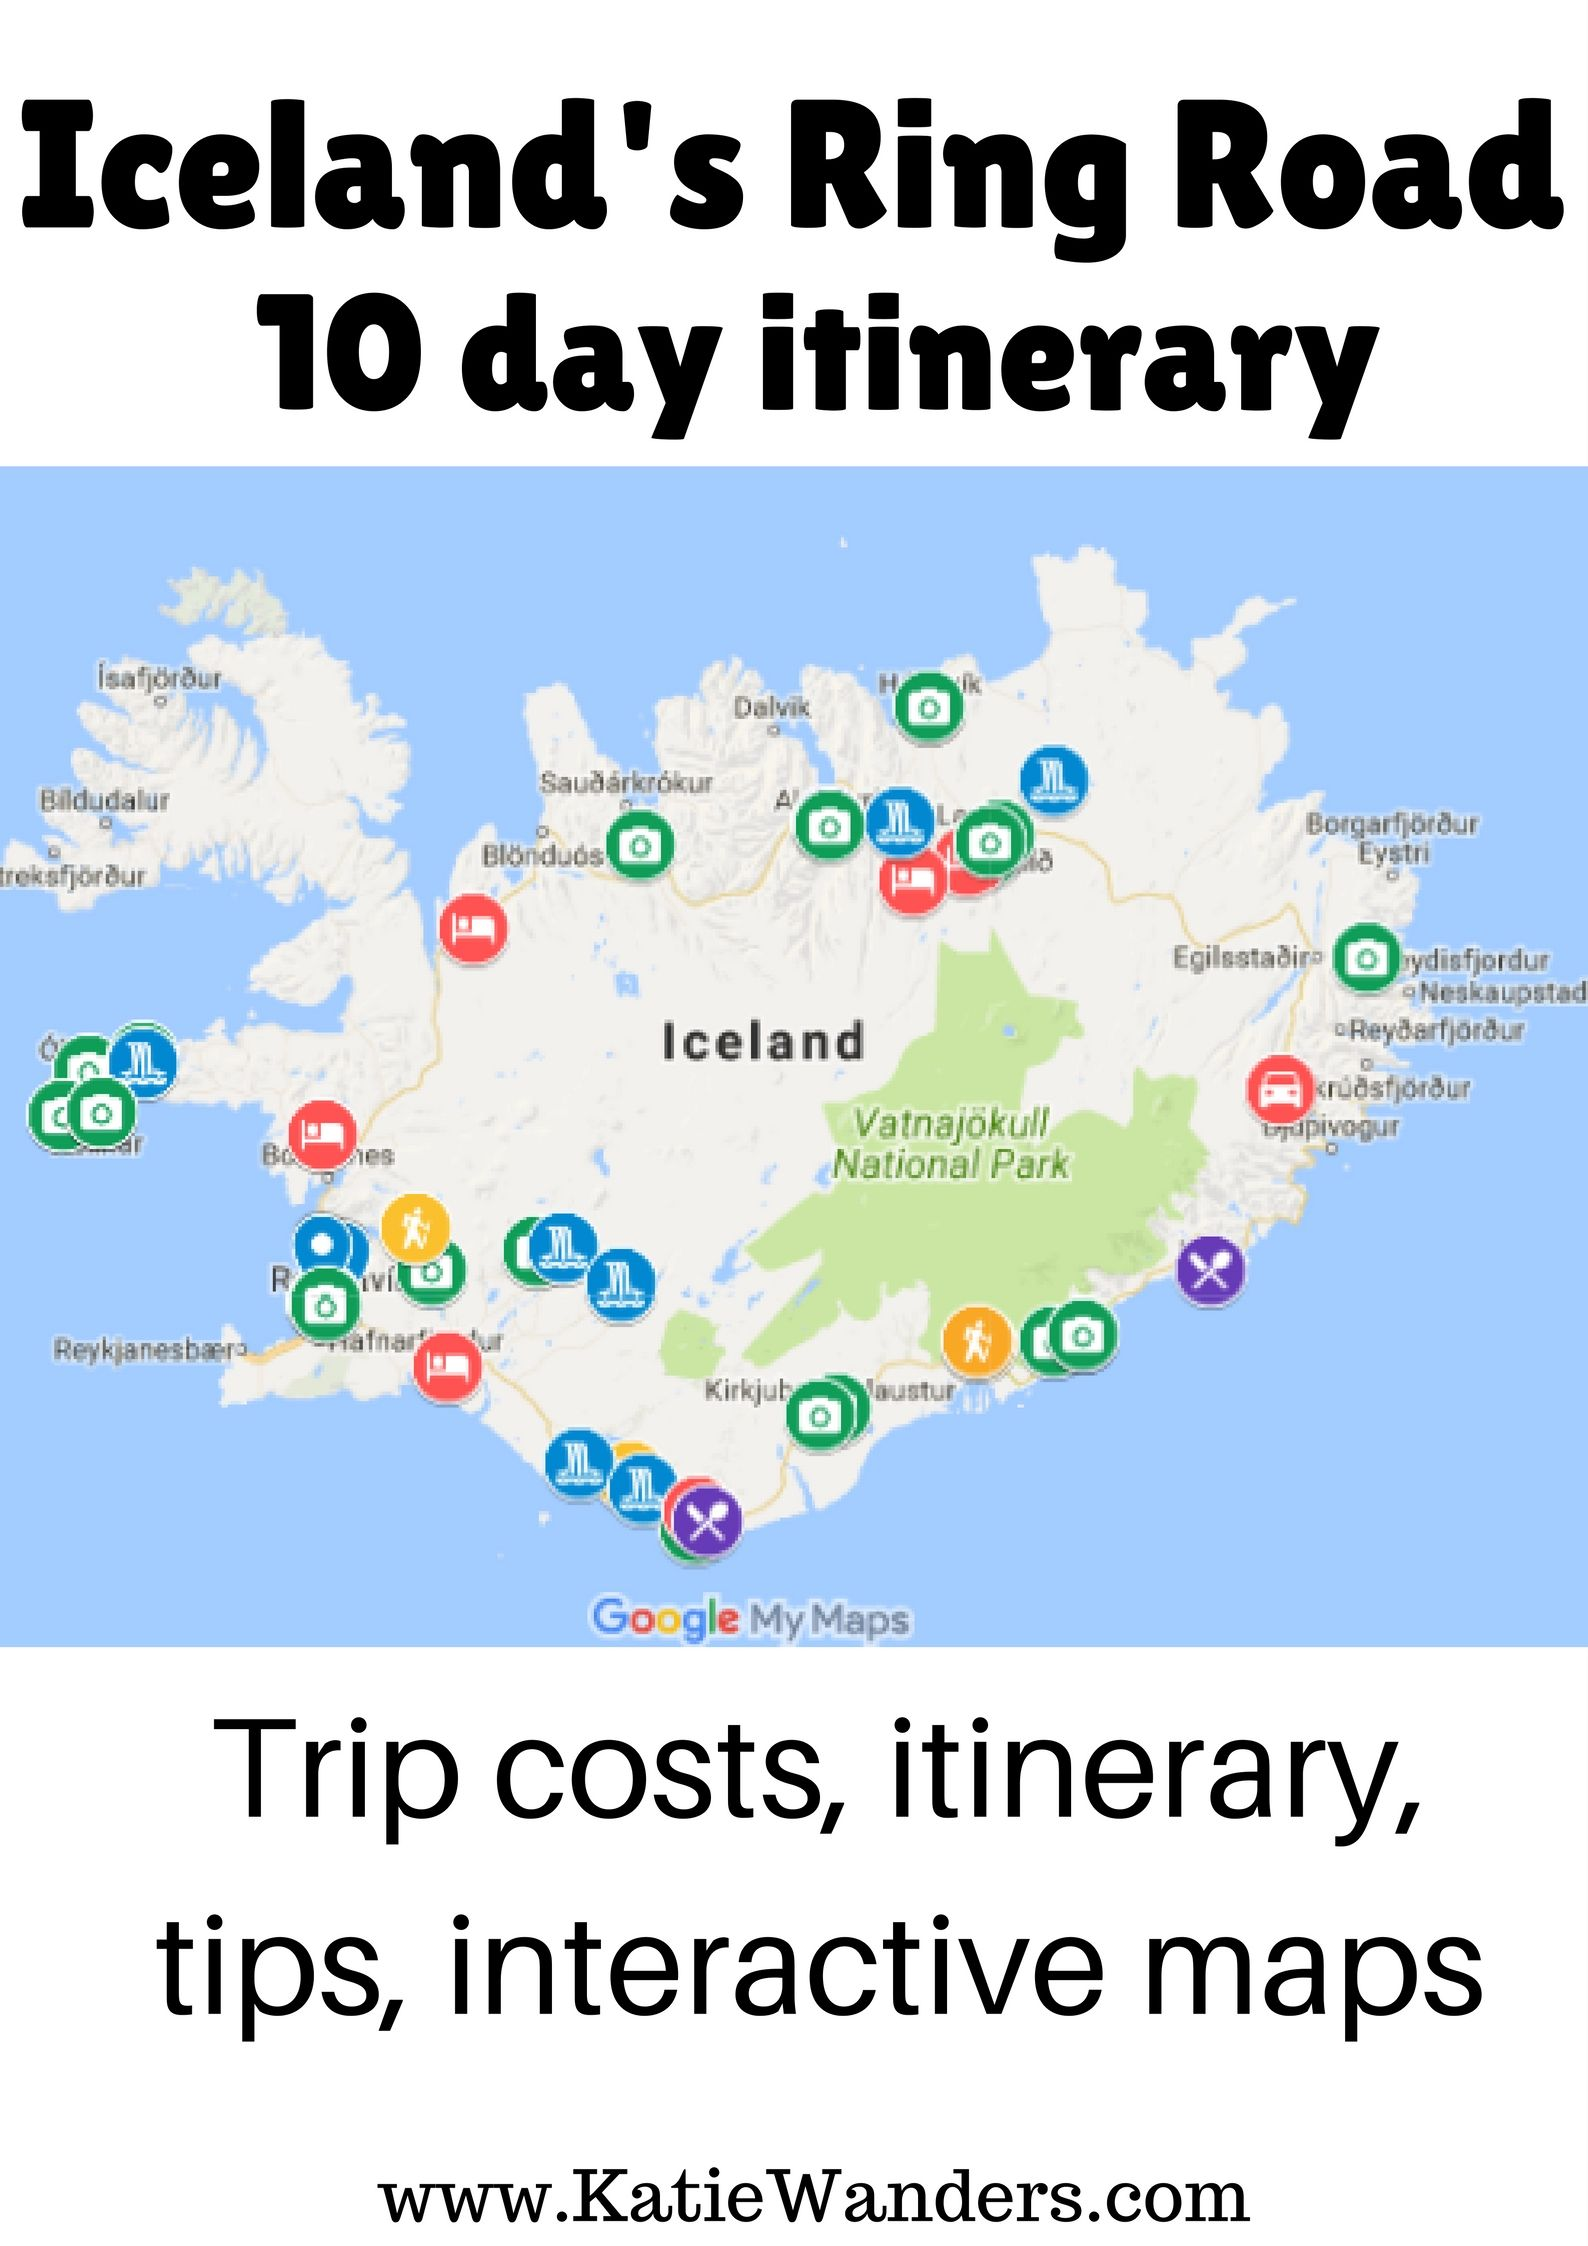 A 10 day itinerary around Iceland's Ring Road! Including day ... Iceland Ring Road Trip Map on iceland ring road length, iceland black population, golden circle reykjavik map, reykjavik tourist map, iceland points of interest maps, iceland ring road bridge, pacific coast highway 1 california map, iceland daylight chart, iceland tours, iceland itinerary, iceland road trip, iceland scenery, greenland road map, iceland stocks, west iceland road map, confederate states of america map, iceland scenic views, iceland f roads, iceland tourism, western canada map,